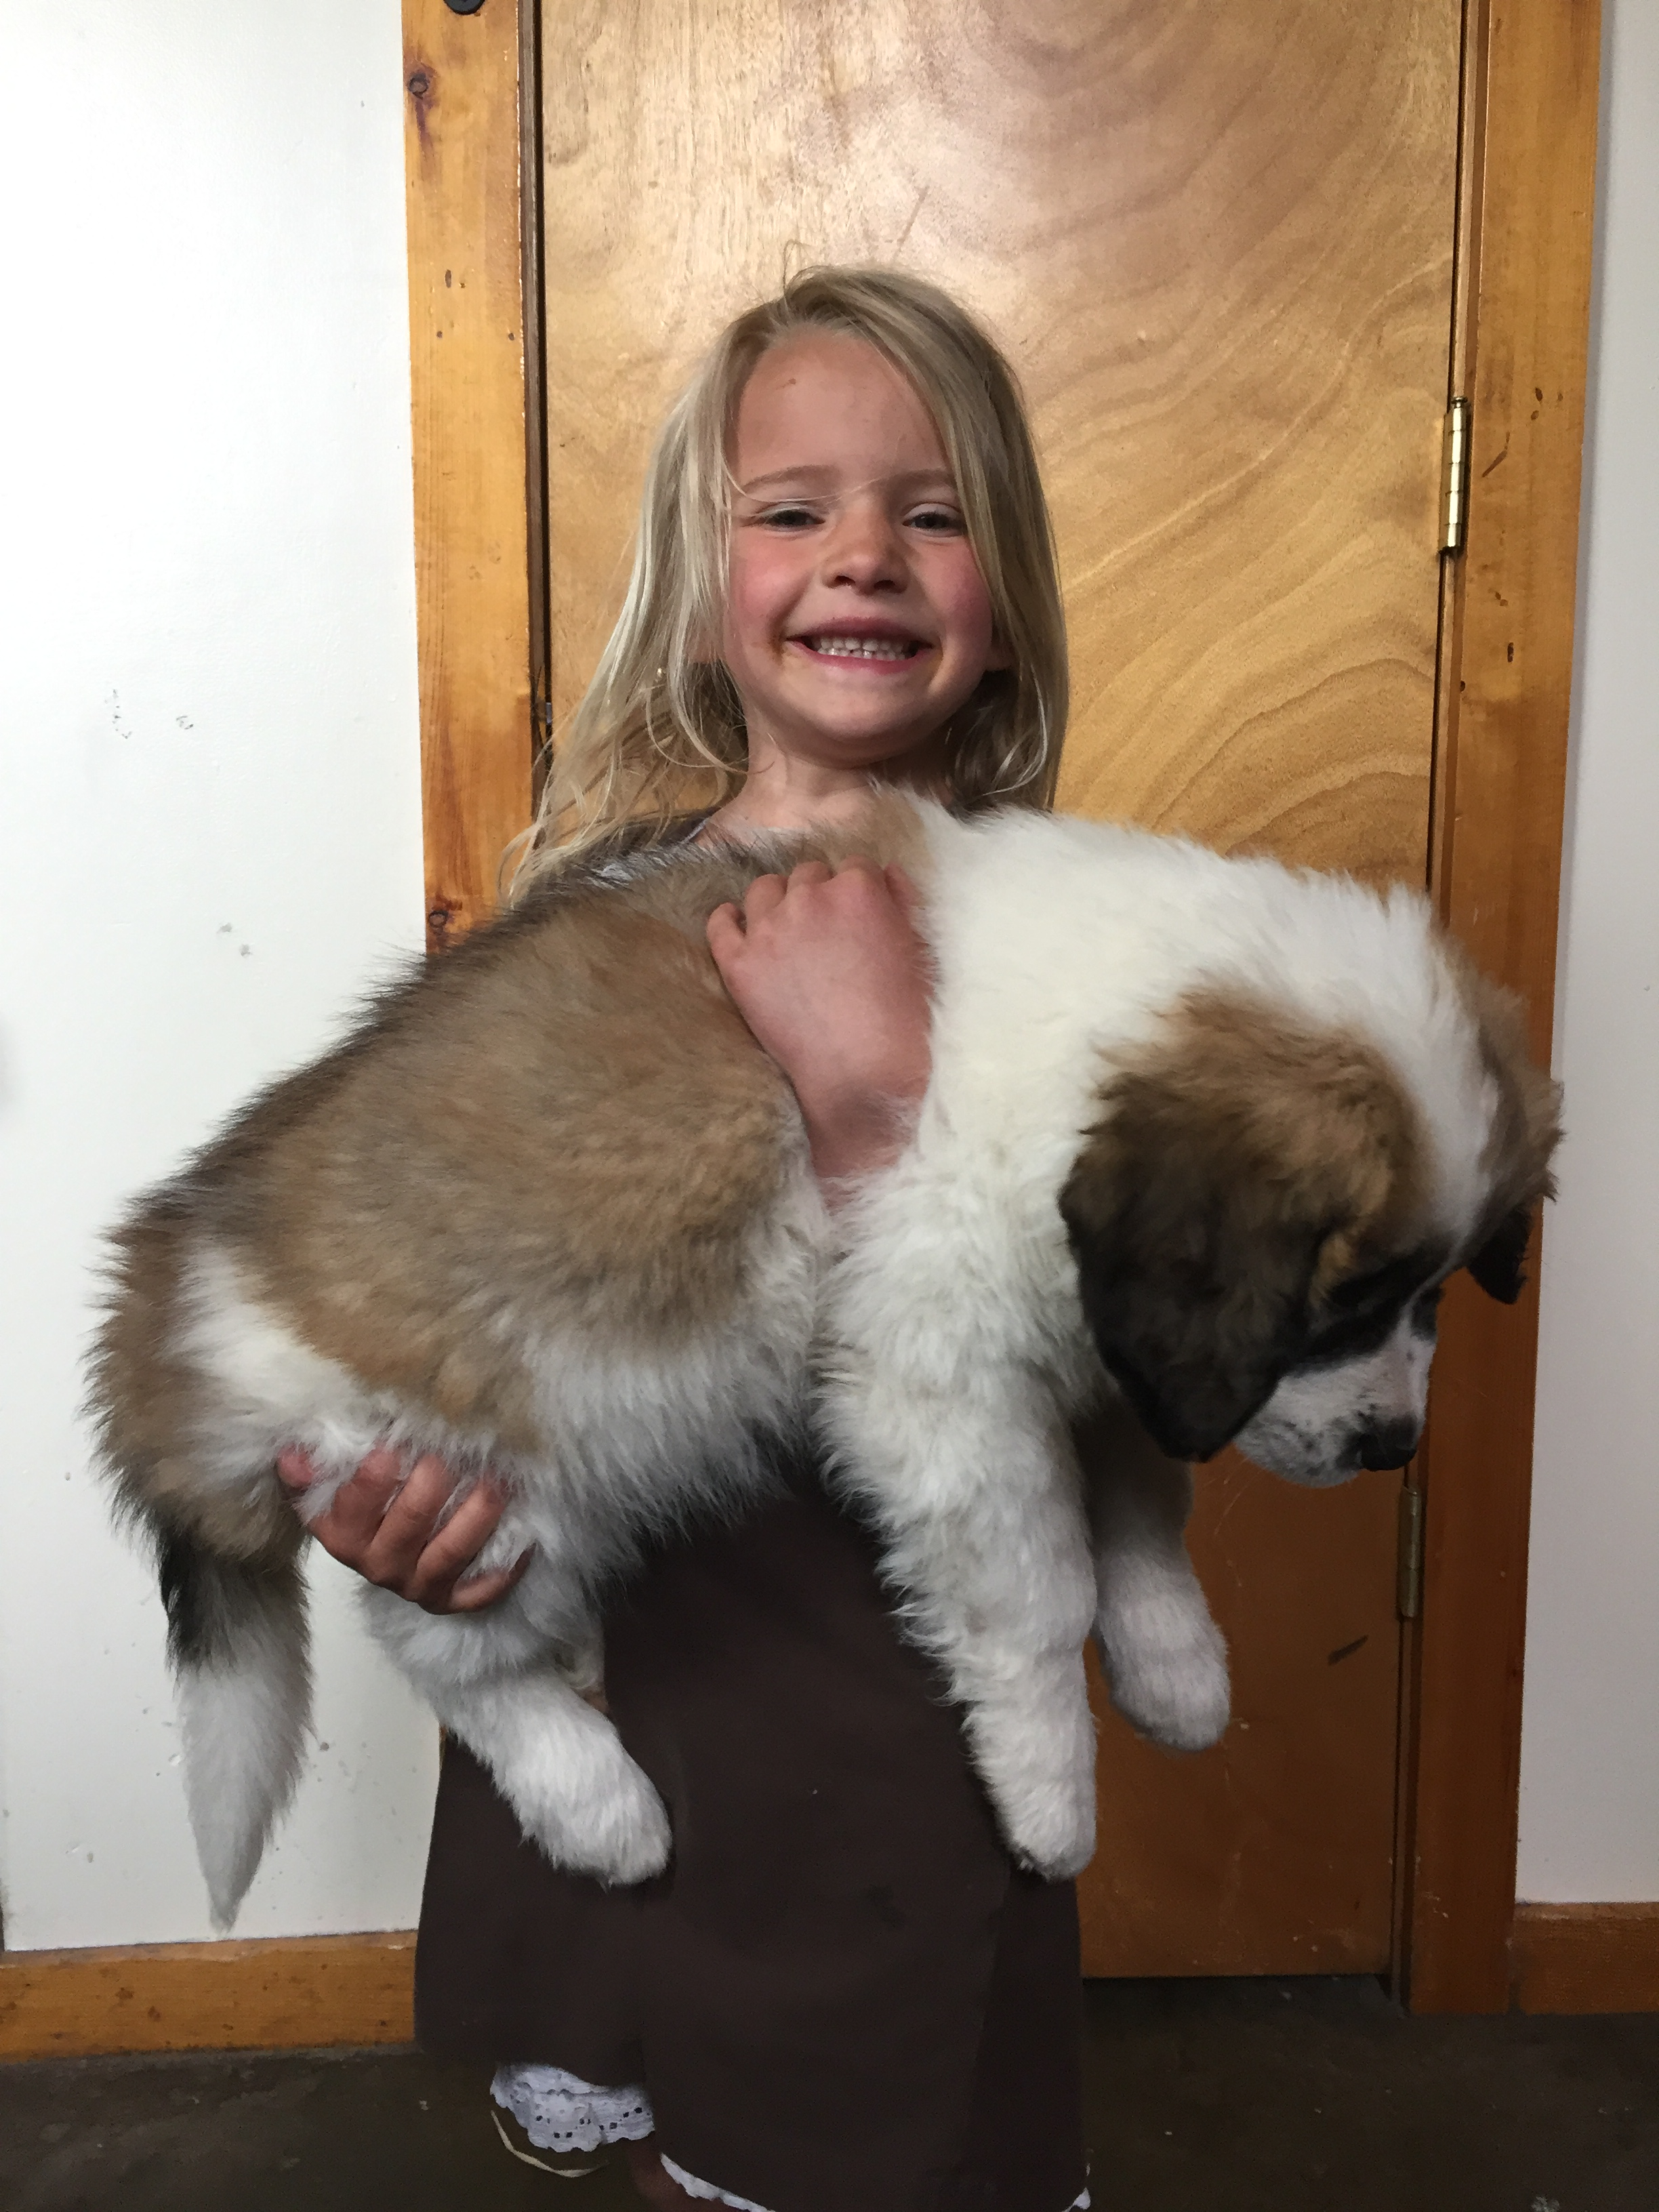 Summit's only 8 weeks old.  Almost too big to handle!